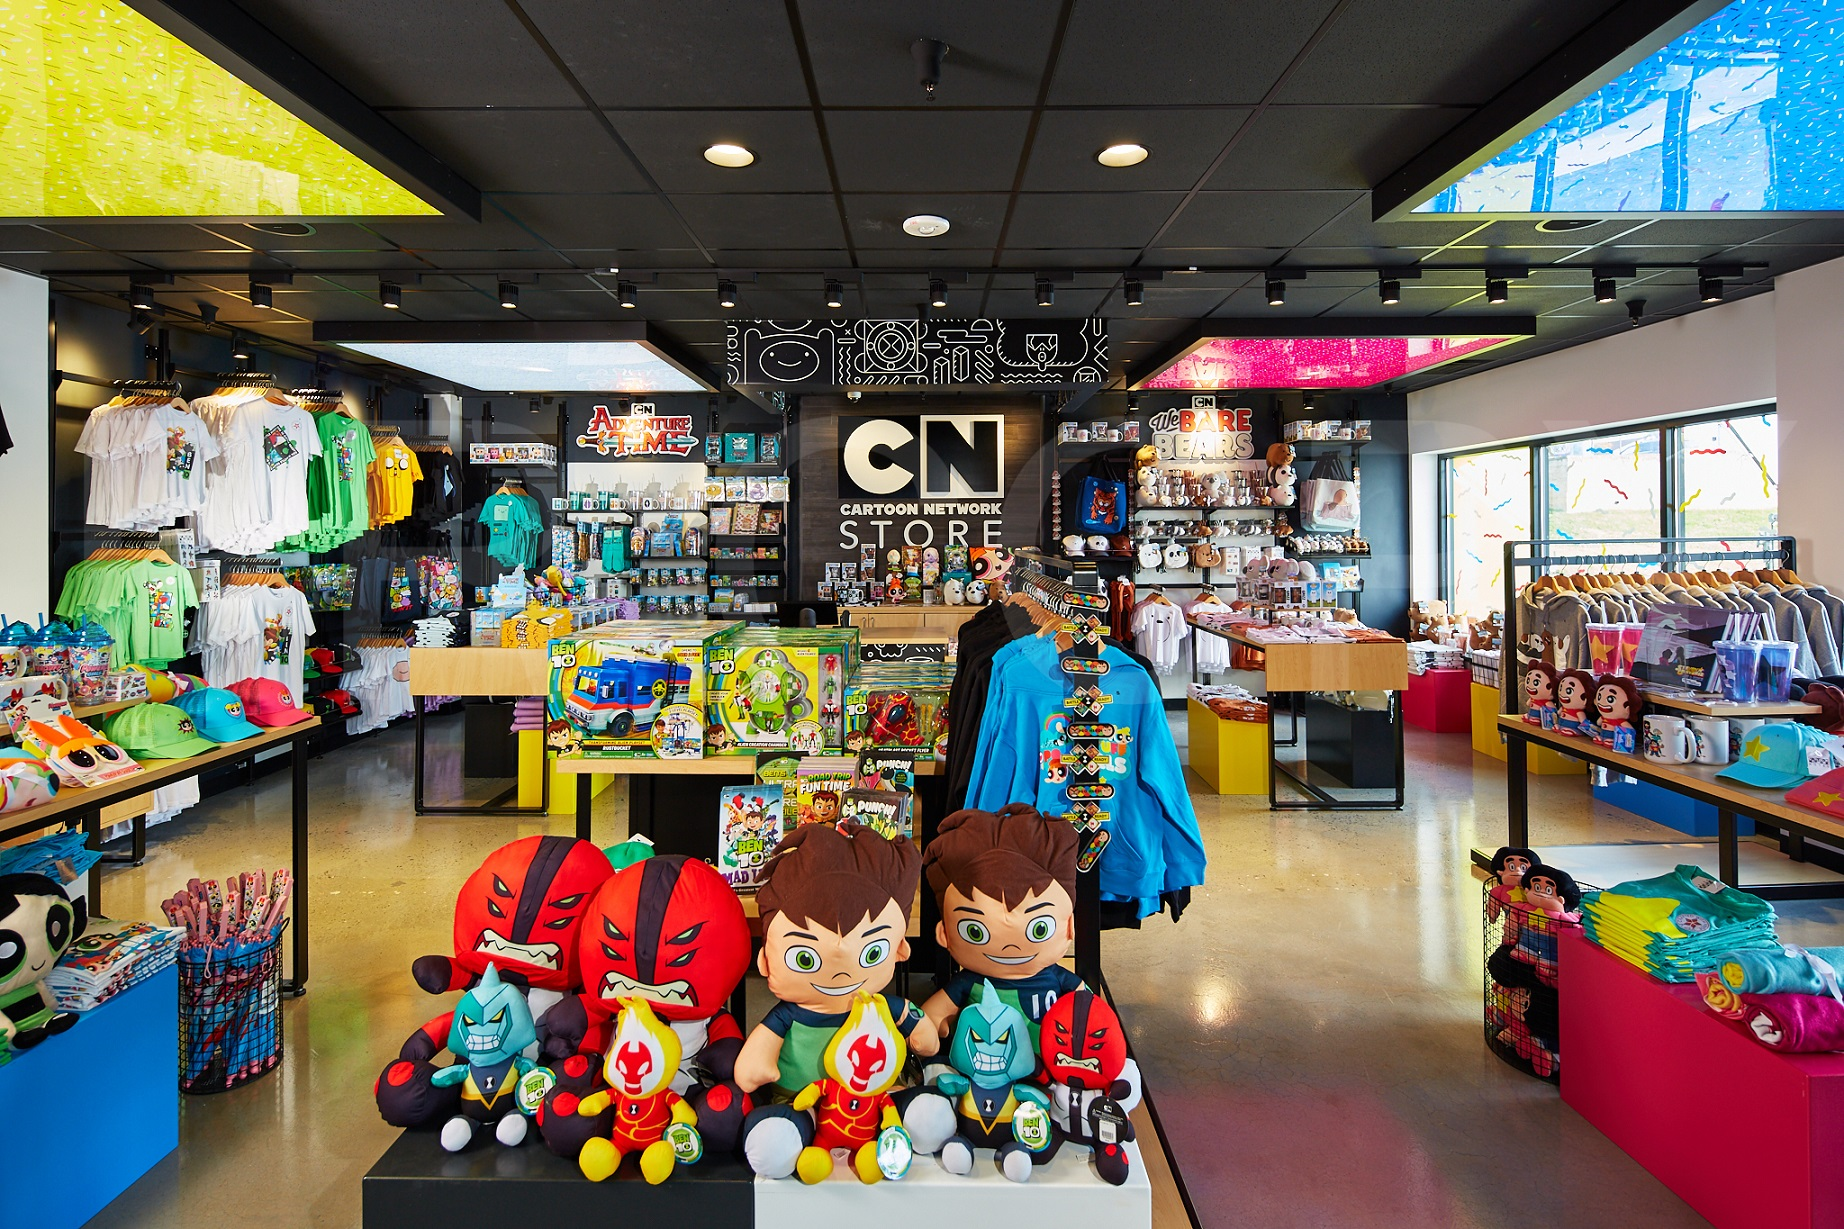 The Cartoon Network Hotel Store front shot